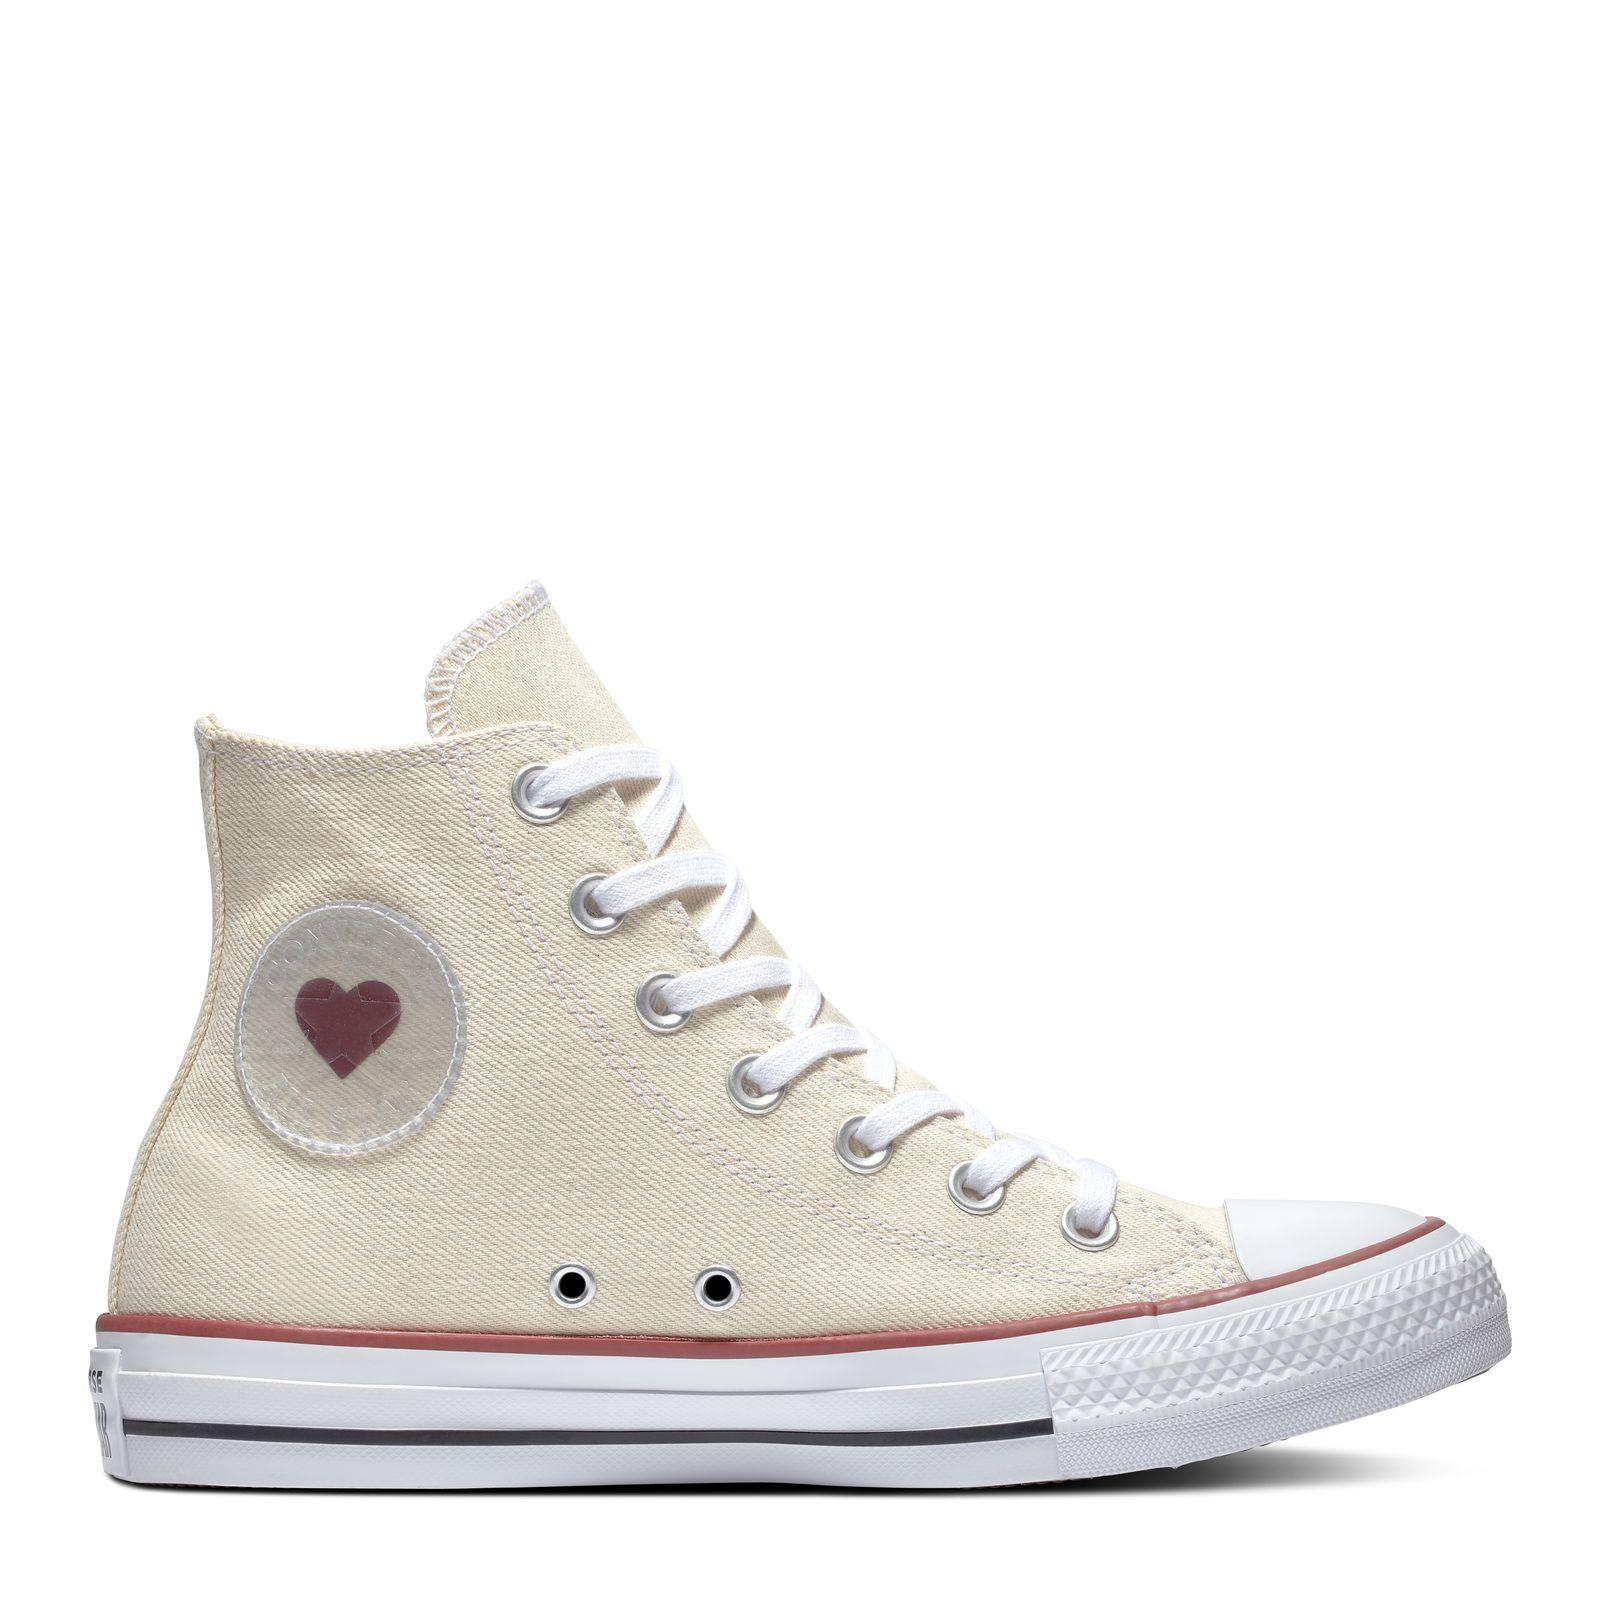 504e3791ff9e CONVERSE CHUCK TAYLOR ALL STAR DENIM LOVE HI - NATURAL WHITE GARNET -  163304C